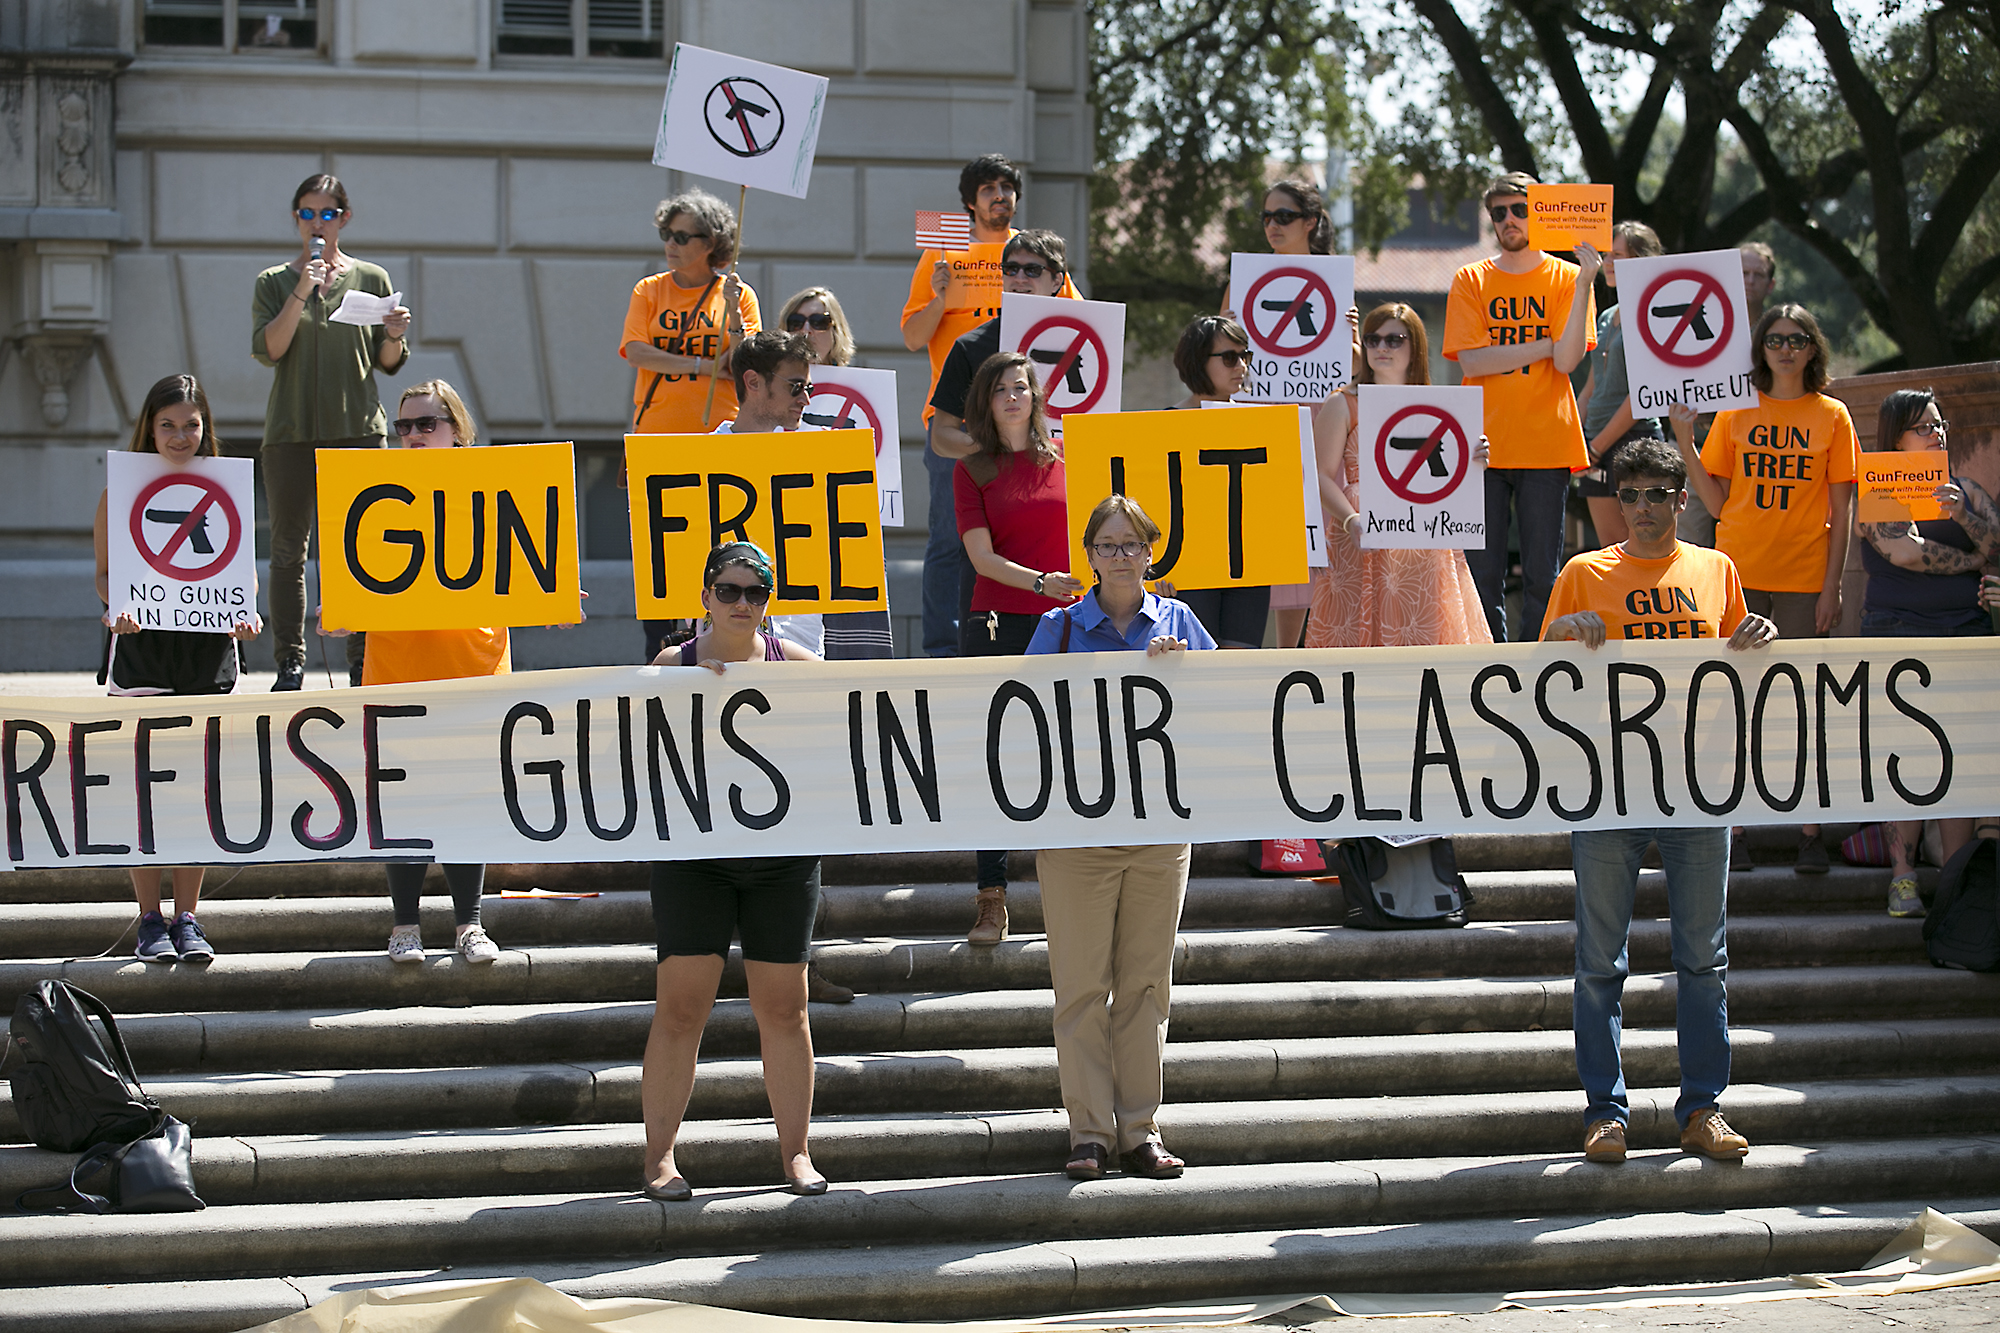 Protestors gathered on the West Mall of the University of Texas campus to oppose a new open carry law, Oct. 1, 2015. Gun rights activist plan on holding a mock mass shooting on the University of Texas campus.